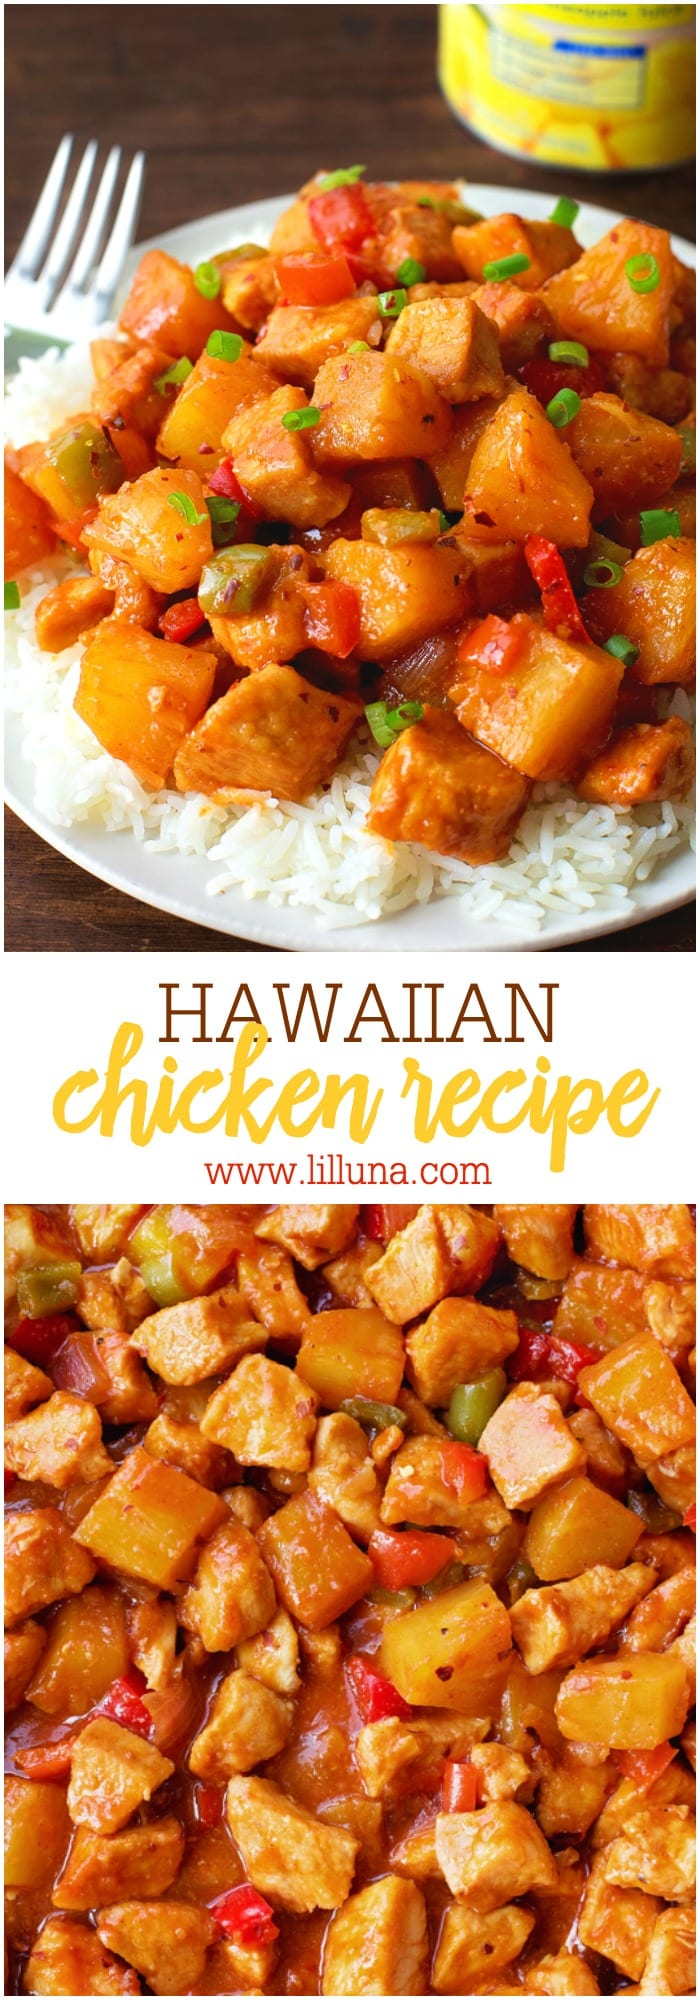 Hawaiian Pineapple Chicken that is full of flavor and chunks of juicy chicken, pineapple and more. Everyone will love this recipe!